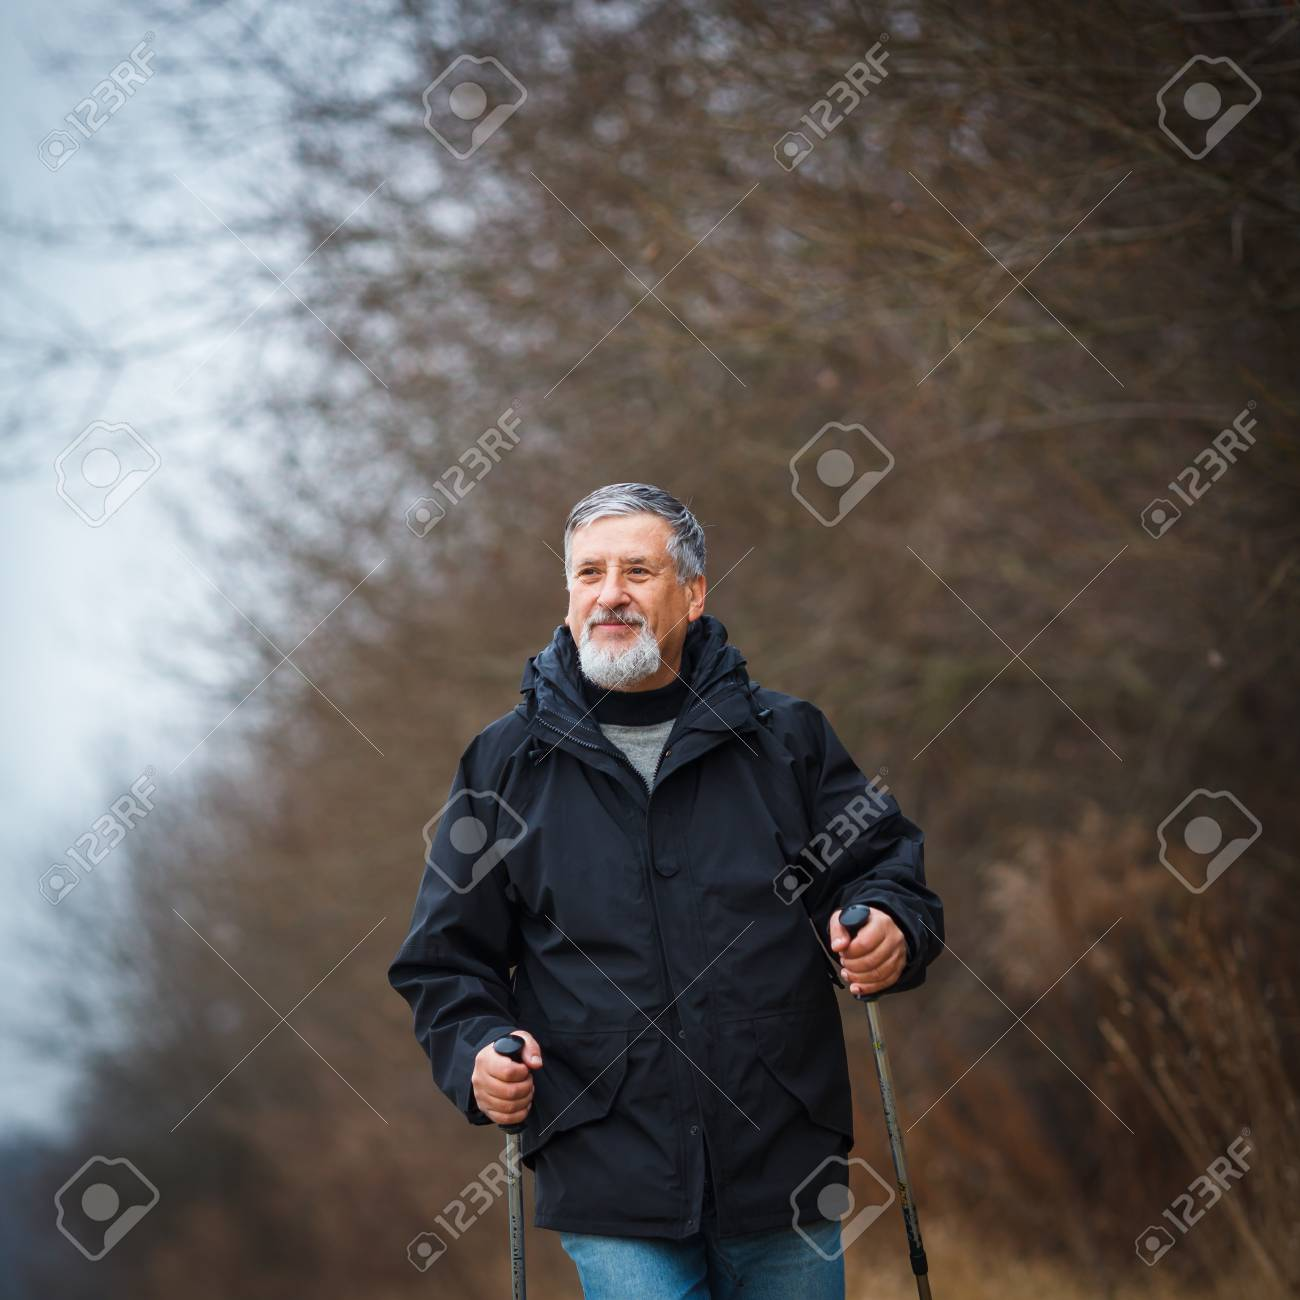 Senior man nordic walking, enjoying the outdoors Stock Photo - 18907180